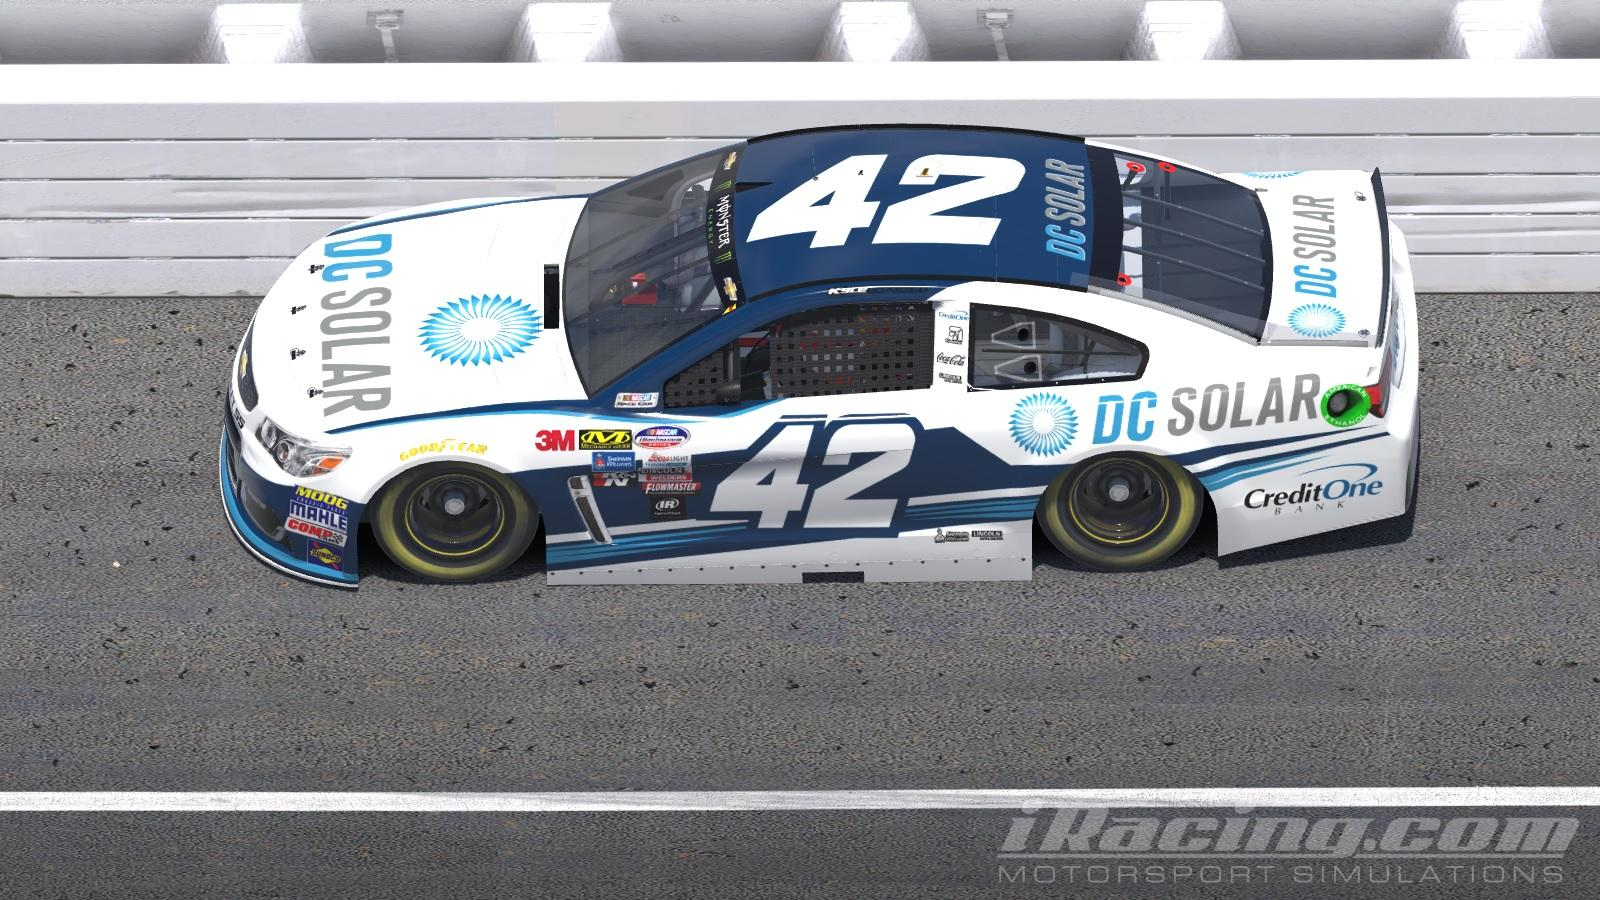 Kyle Larson 2018 DC Solar Chevy SS NASCAR Monster Energy Cup Chevrolet By Will Norton